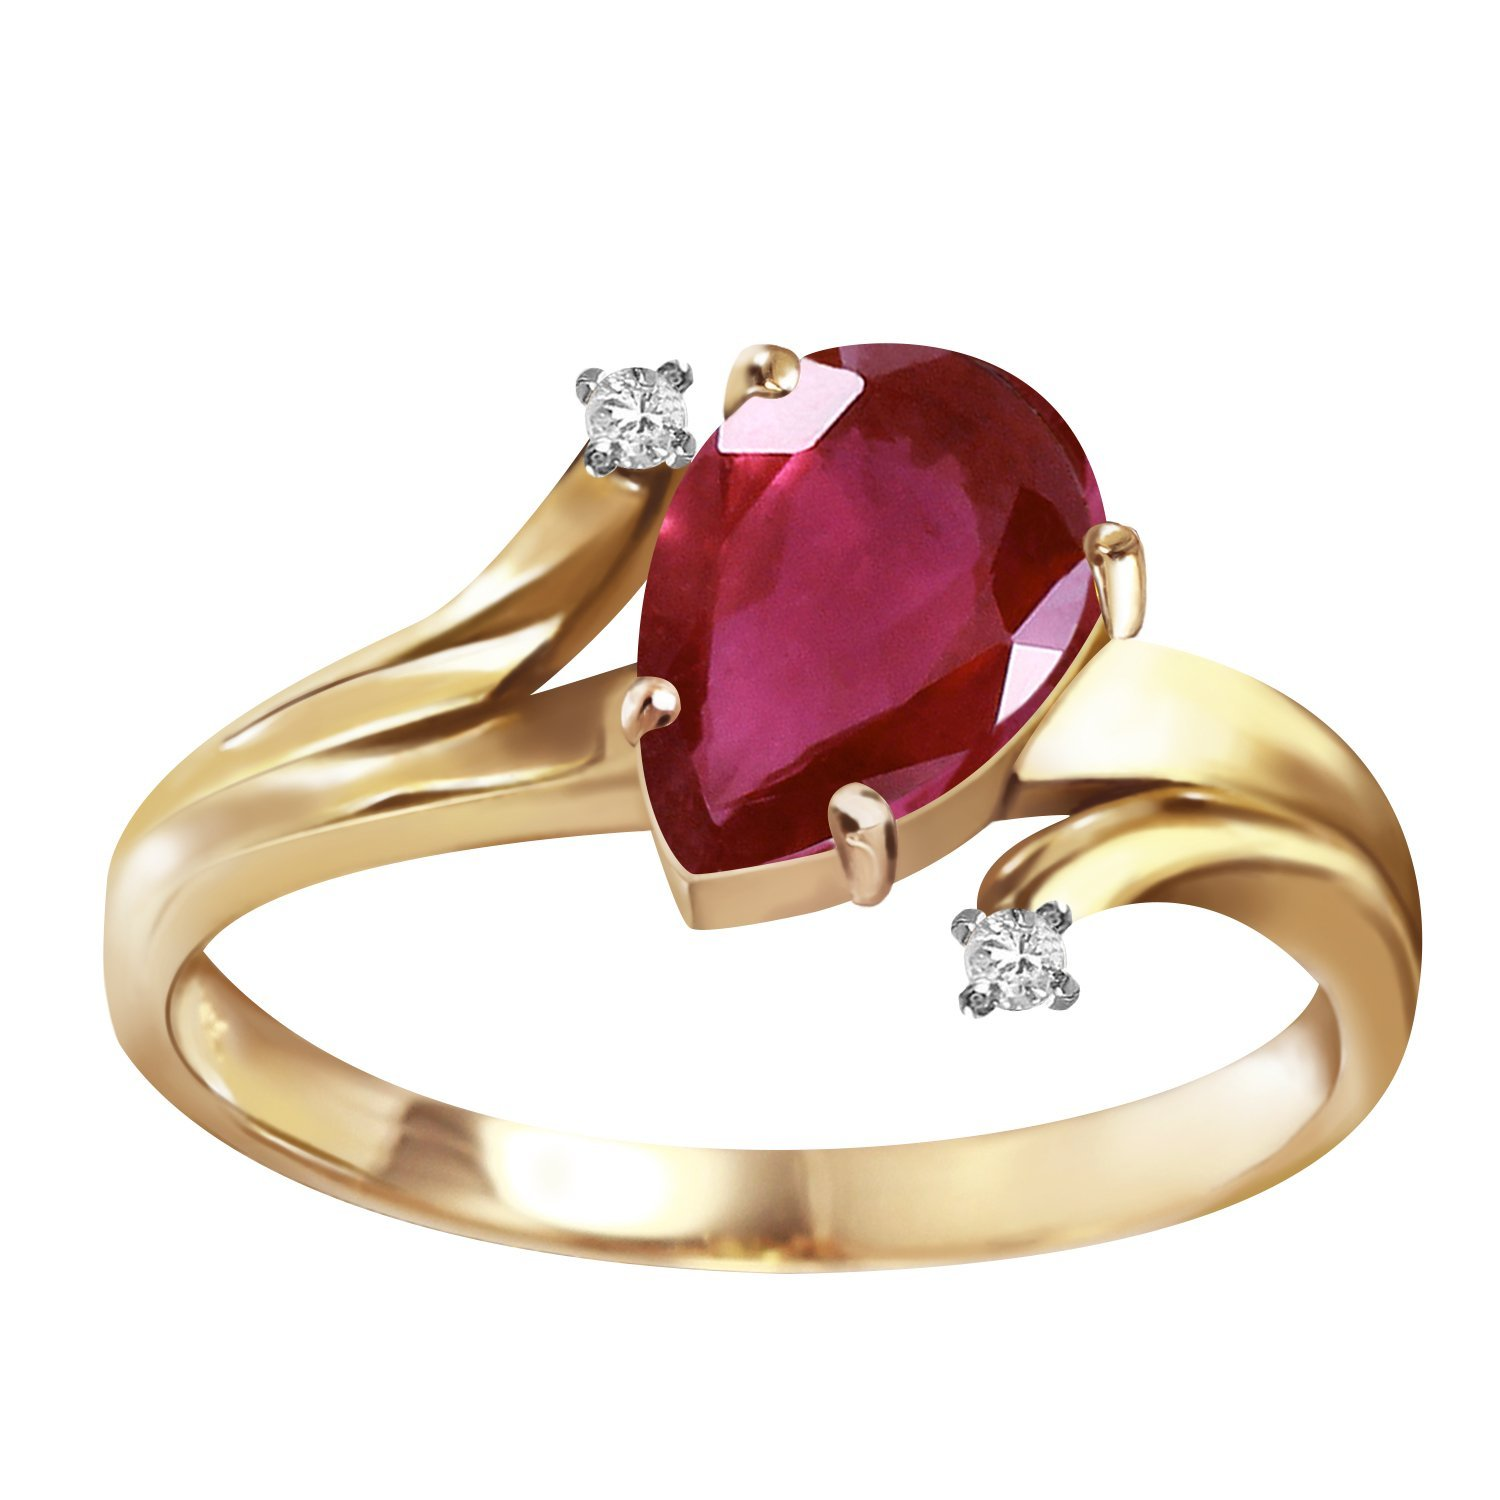 1.51 Carat 14k Solid Gold Ring with Genuine Diamonds and Natural Pear-Shaped Ruby - Size 8.5